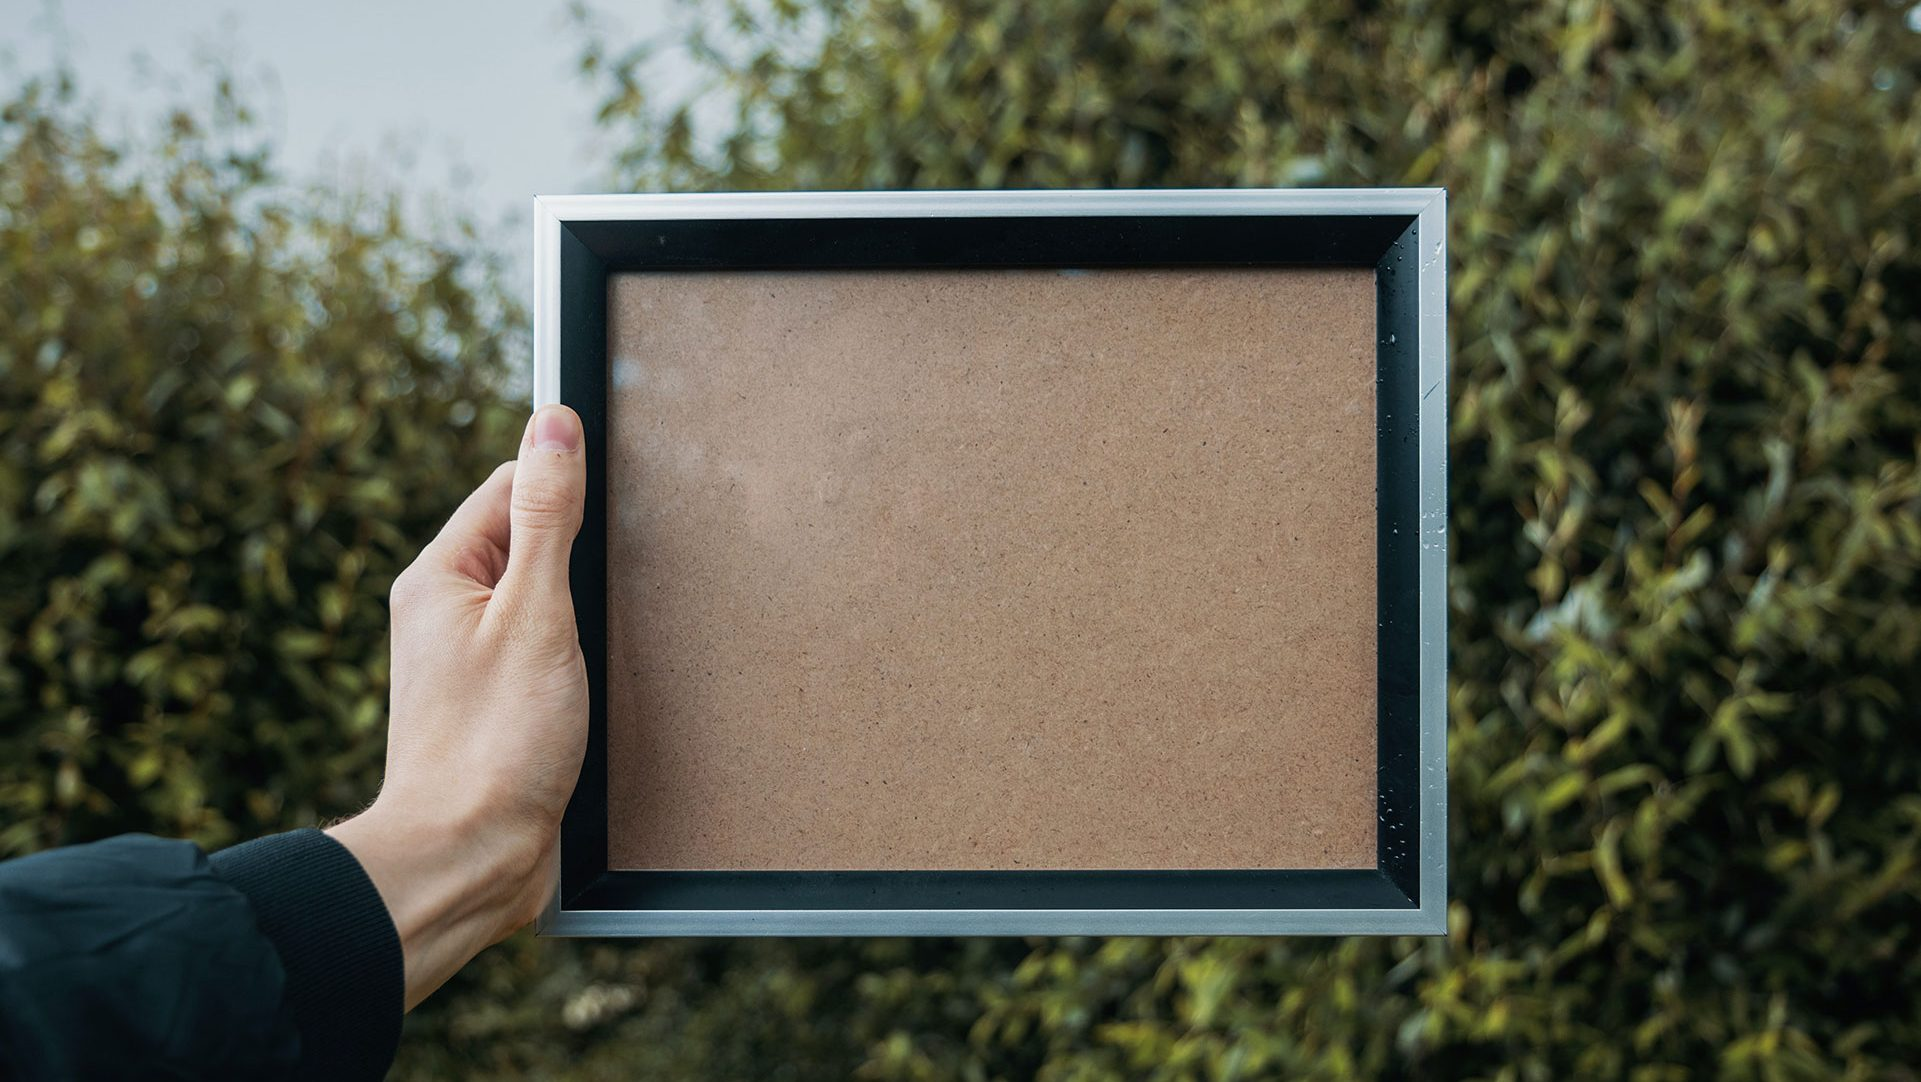 blank frame - person holding a photo frame - white frame with no photo